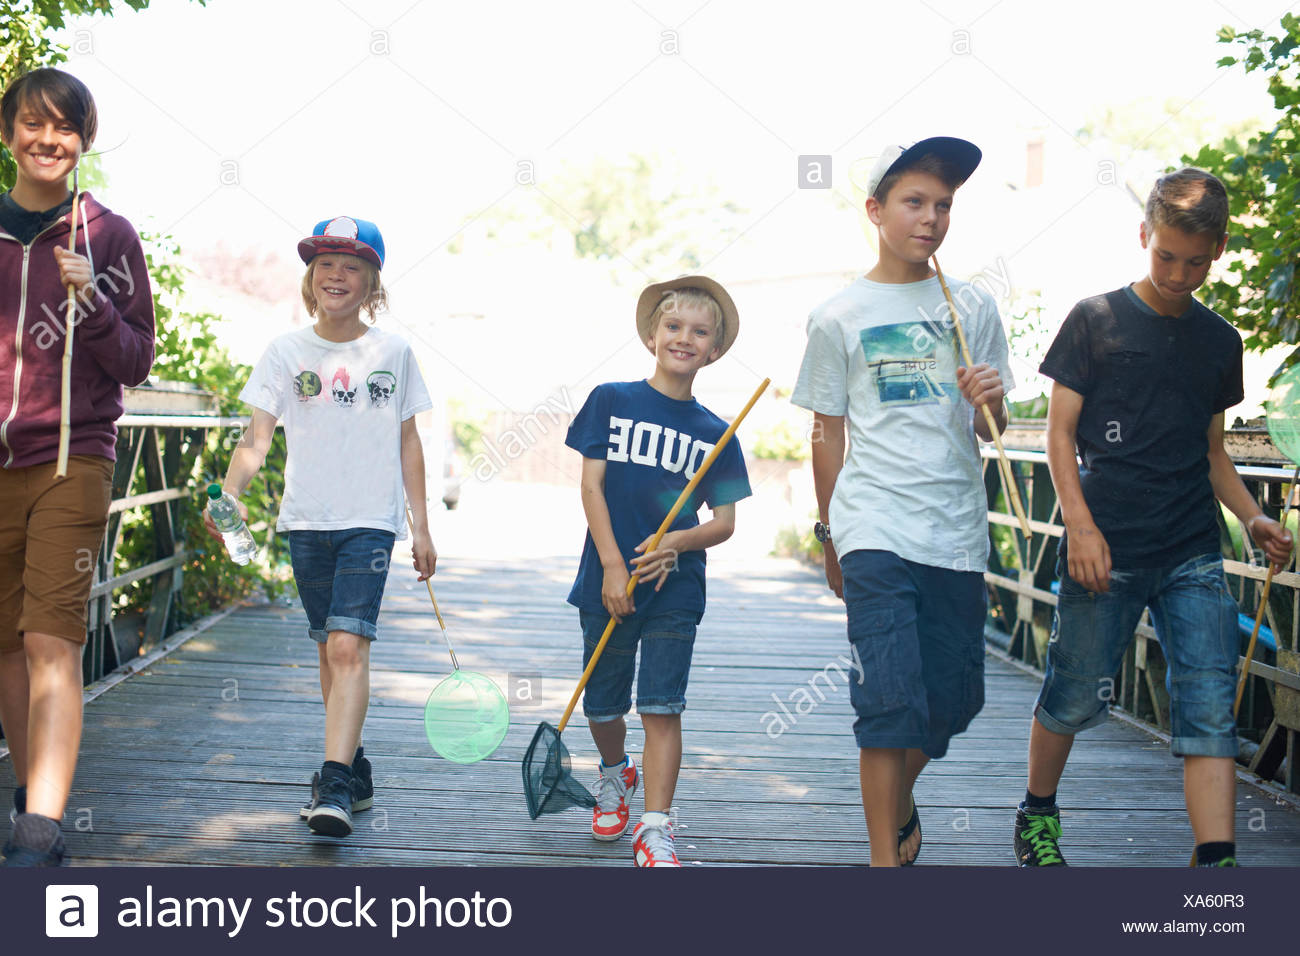 Group of boys on bridge with fishing nets - Stock Image